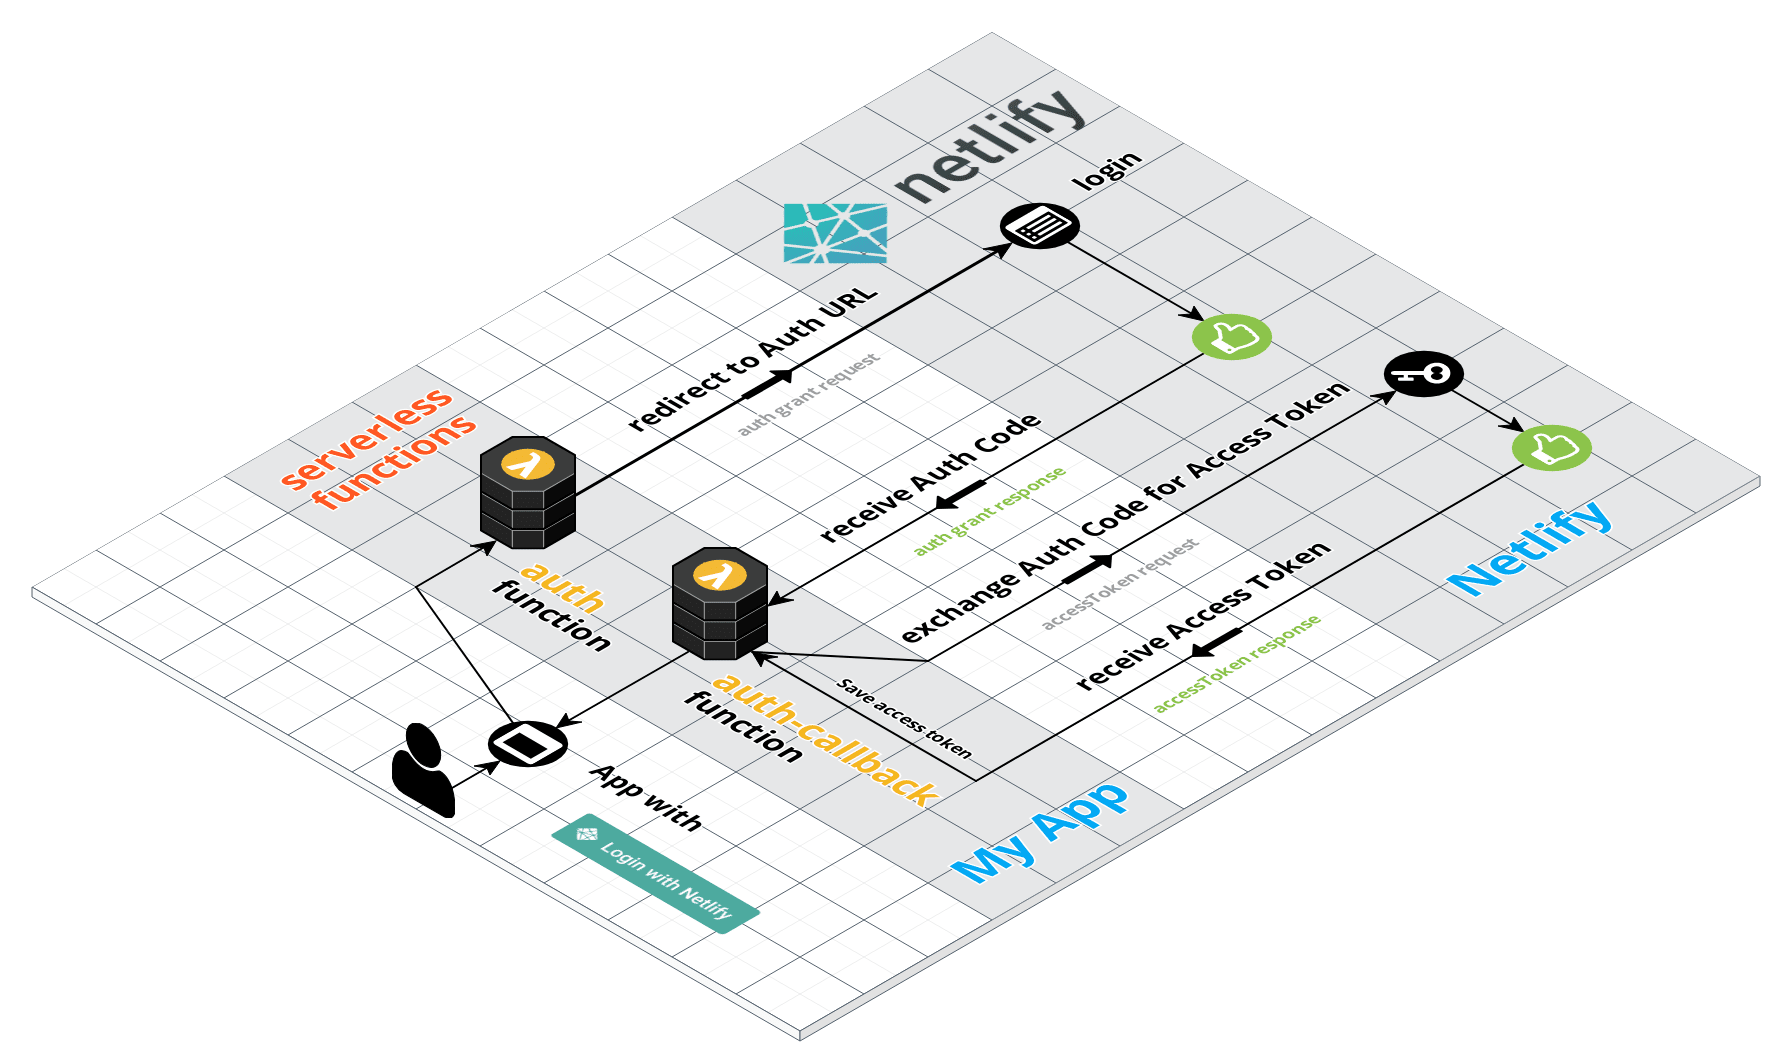 Netlify OAuth + Functions